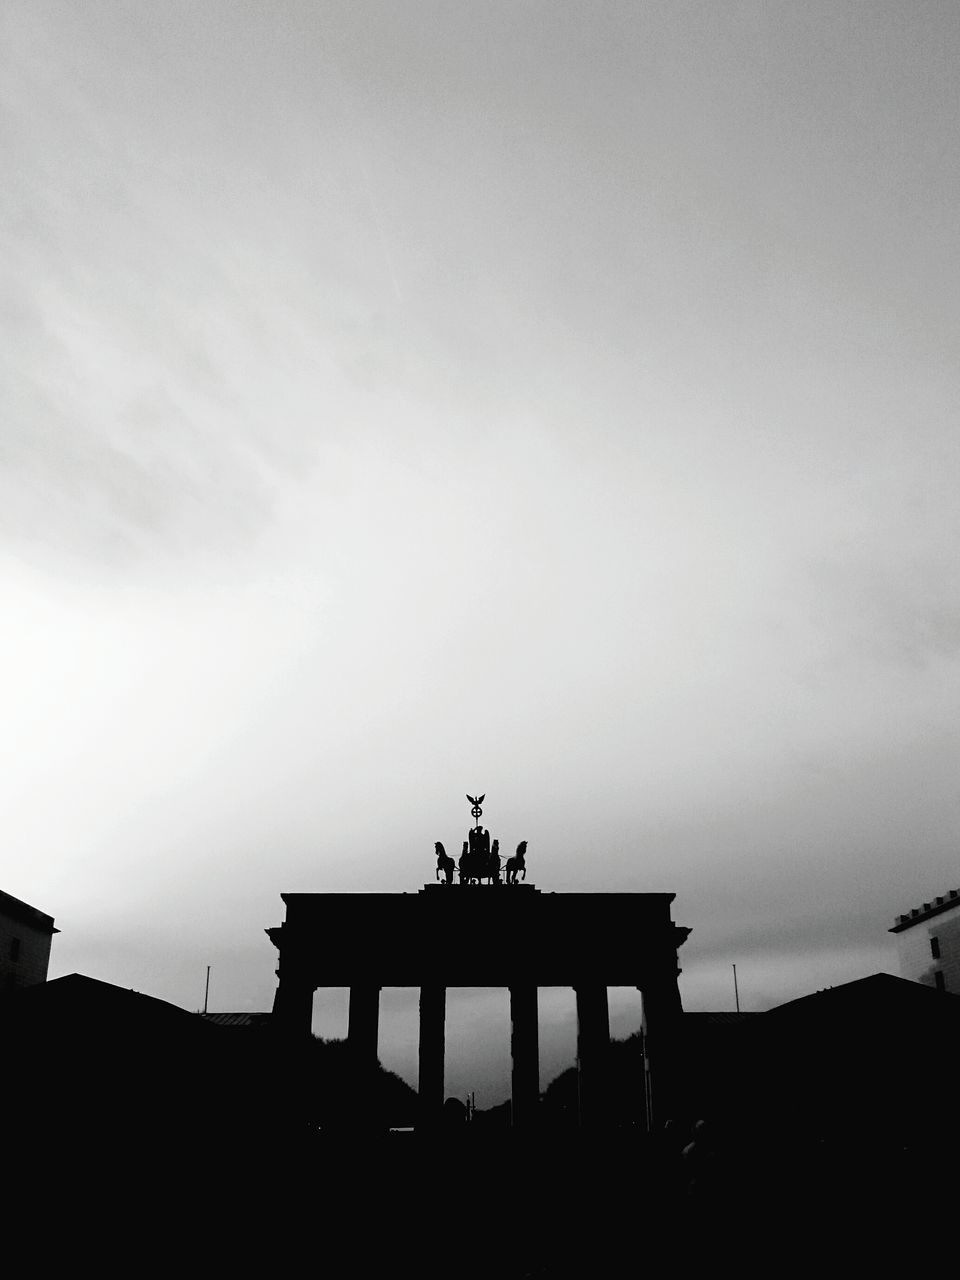 sky, architecture, silhouette, sculpture, built structure, statue, travel, nature, history, the past, art and craft, travel destinations, no people, tourism, outdoors, representation, copy space, low angle view, human representation, architectural column